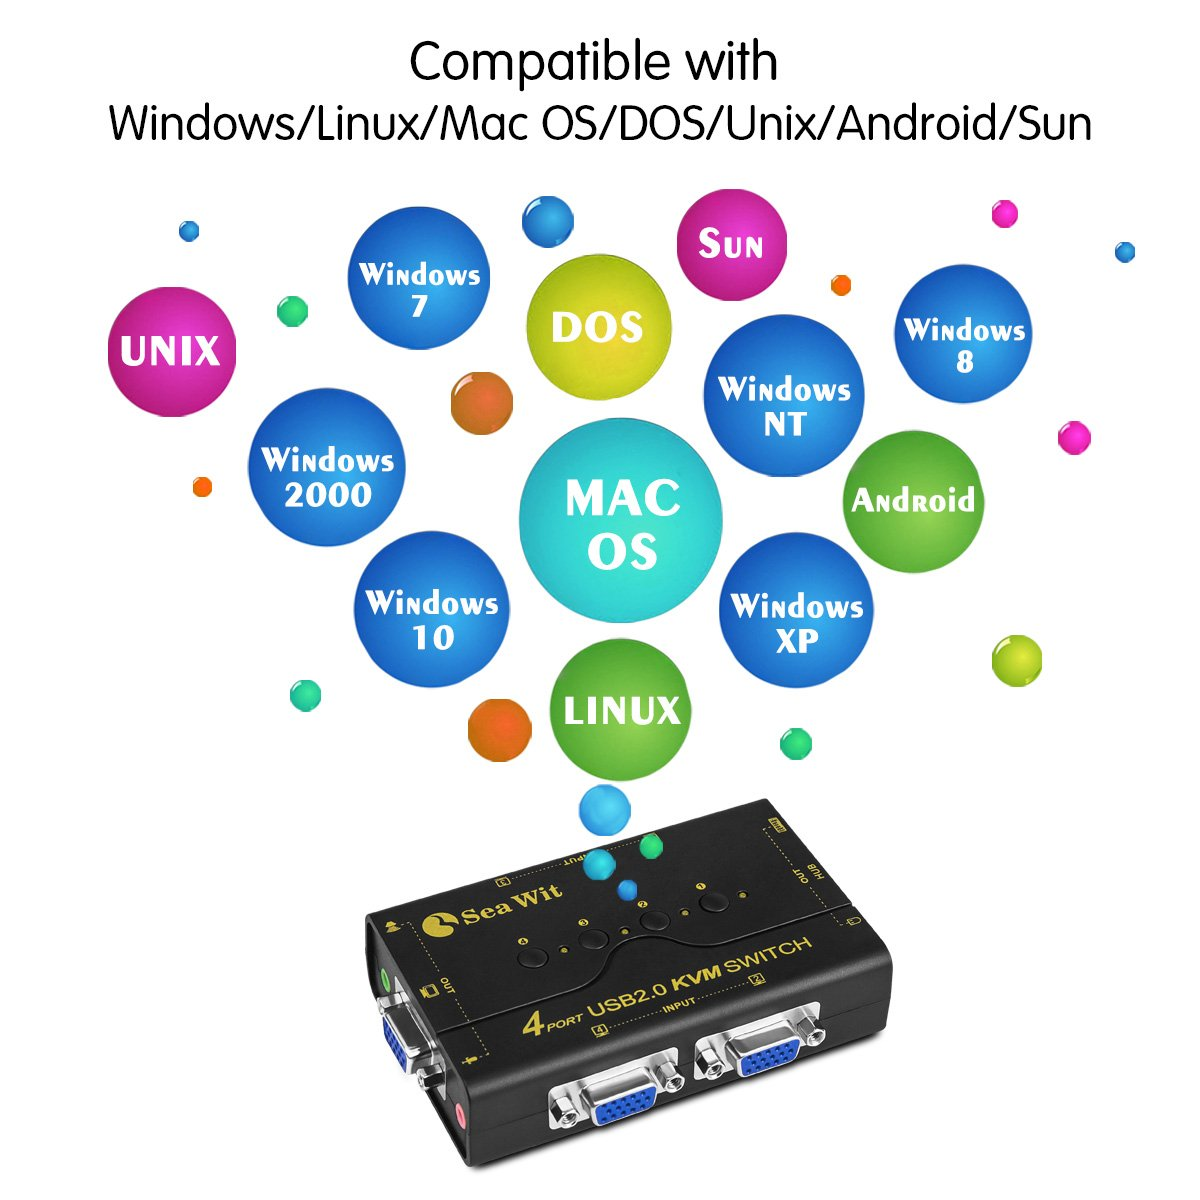 Sea Wit USB KVM Switch,4 Port VGA Video Switch Box with an Additional HUB for Sharing More USB Devices,Supports Audio and Mic 4 in 1 Out for Windows//Linux//Unix//Dos and MAC